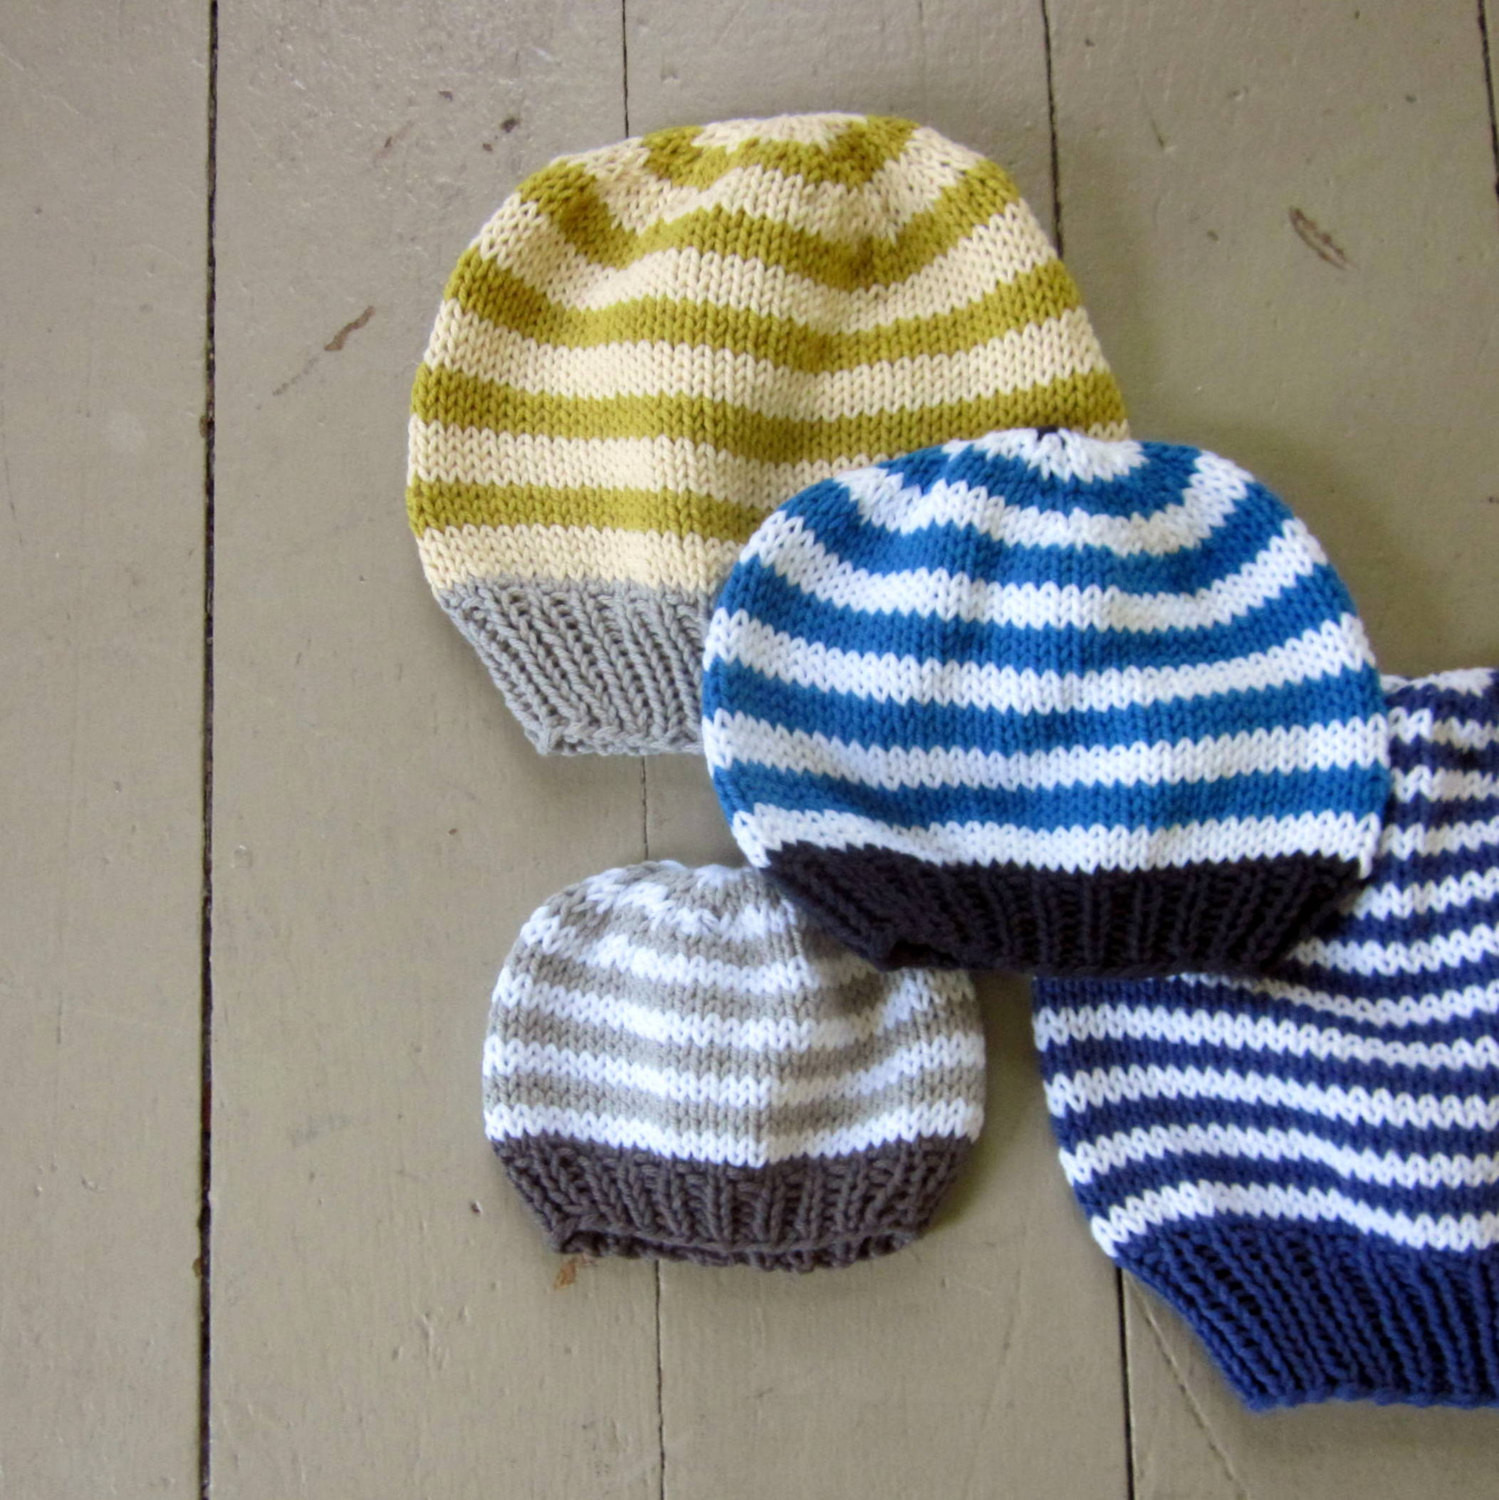 Beautiful Quick and Easy Knitting Patterns Designer Knitting Patterns Of Incredible 48 Pics Designer Knitting Patterns